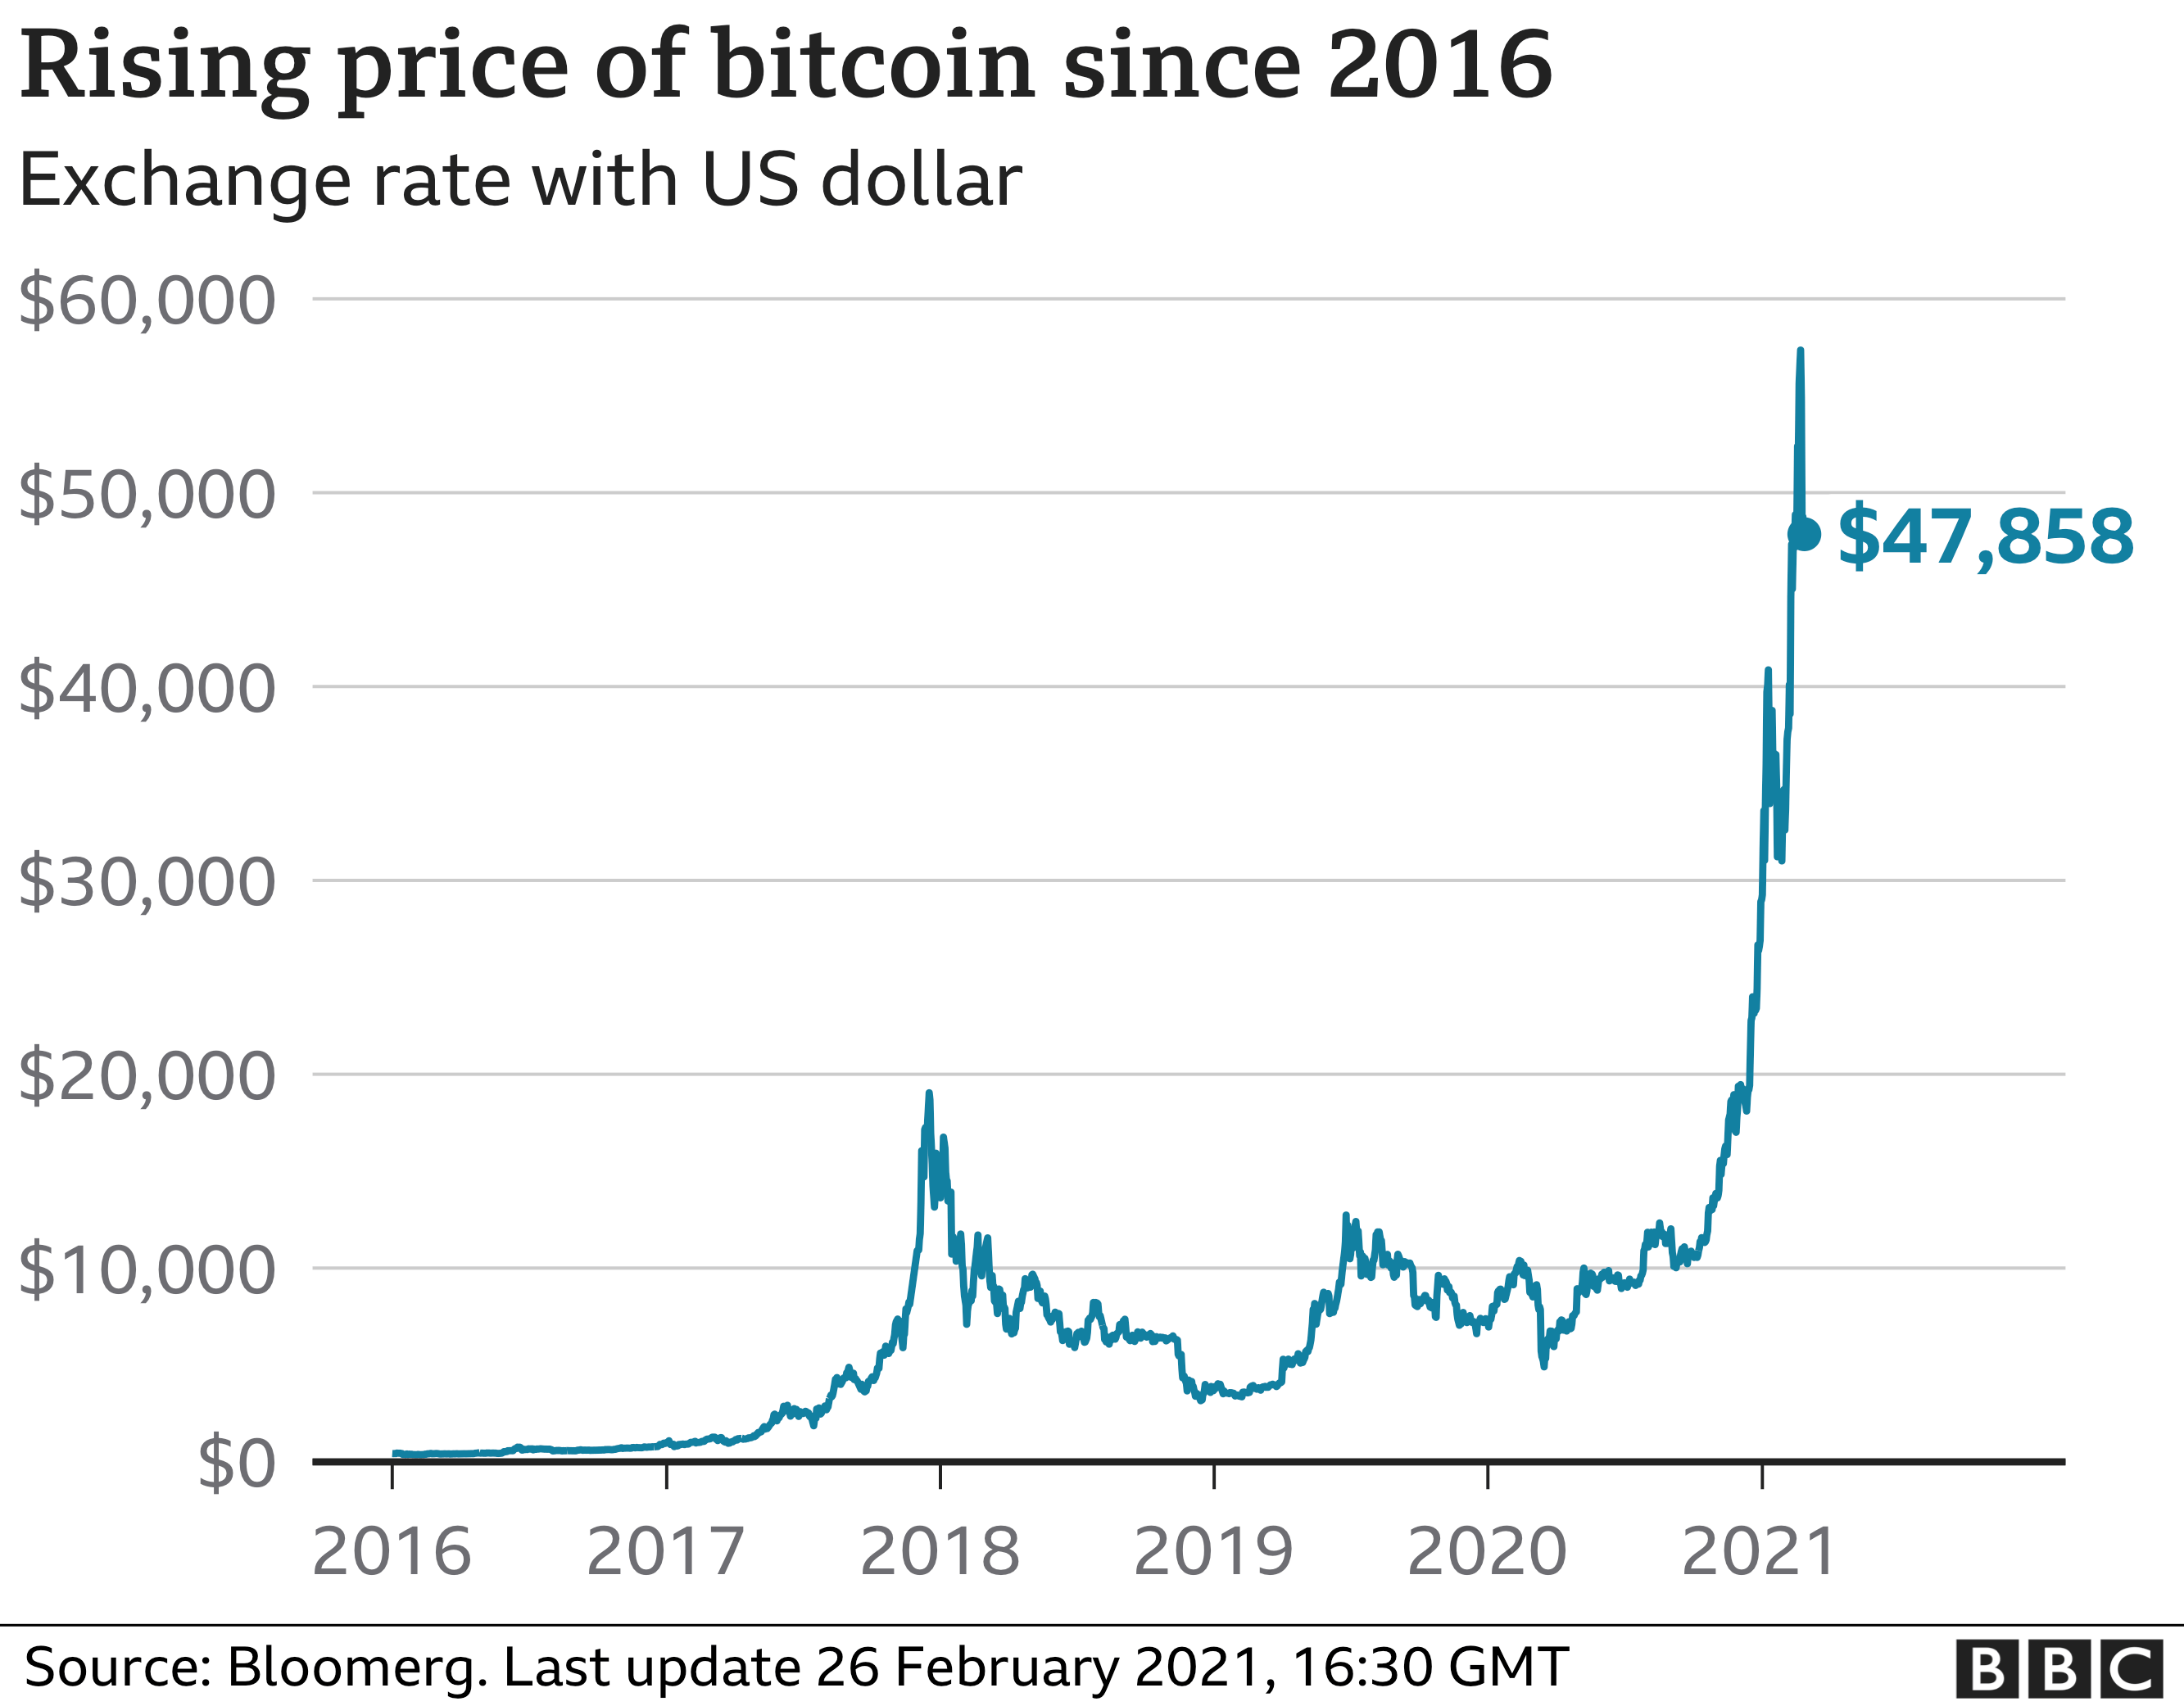 Rising price of bitcoin graphic